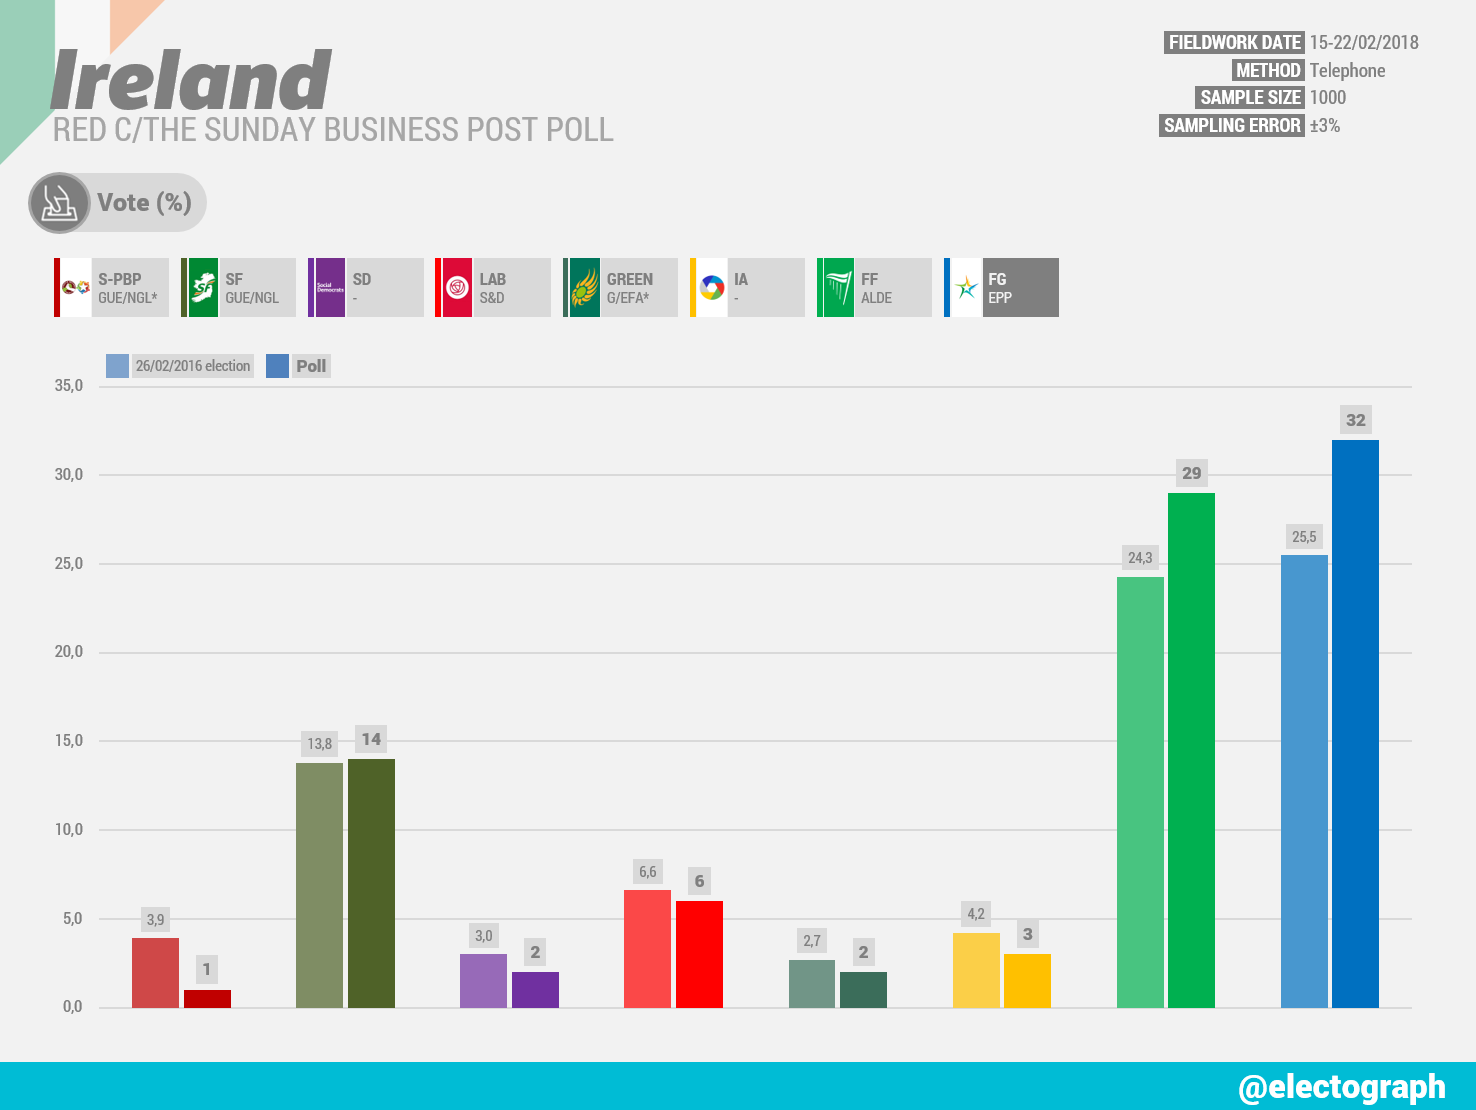 IRELAND Red C poll chart for The Sunday Business Post, February 2018